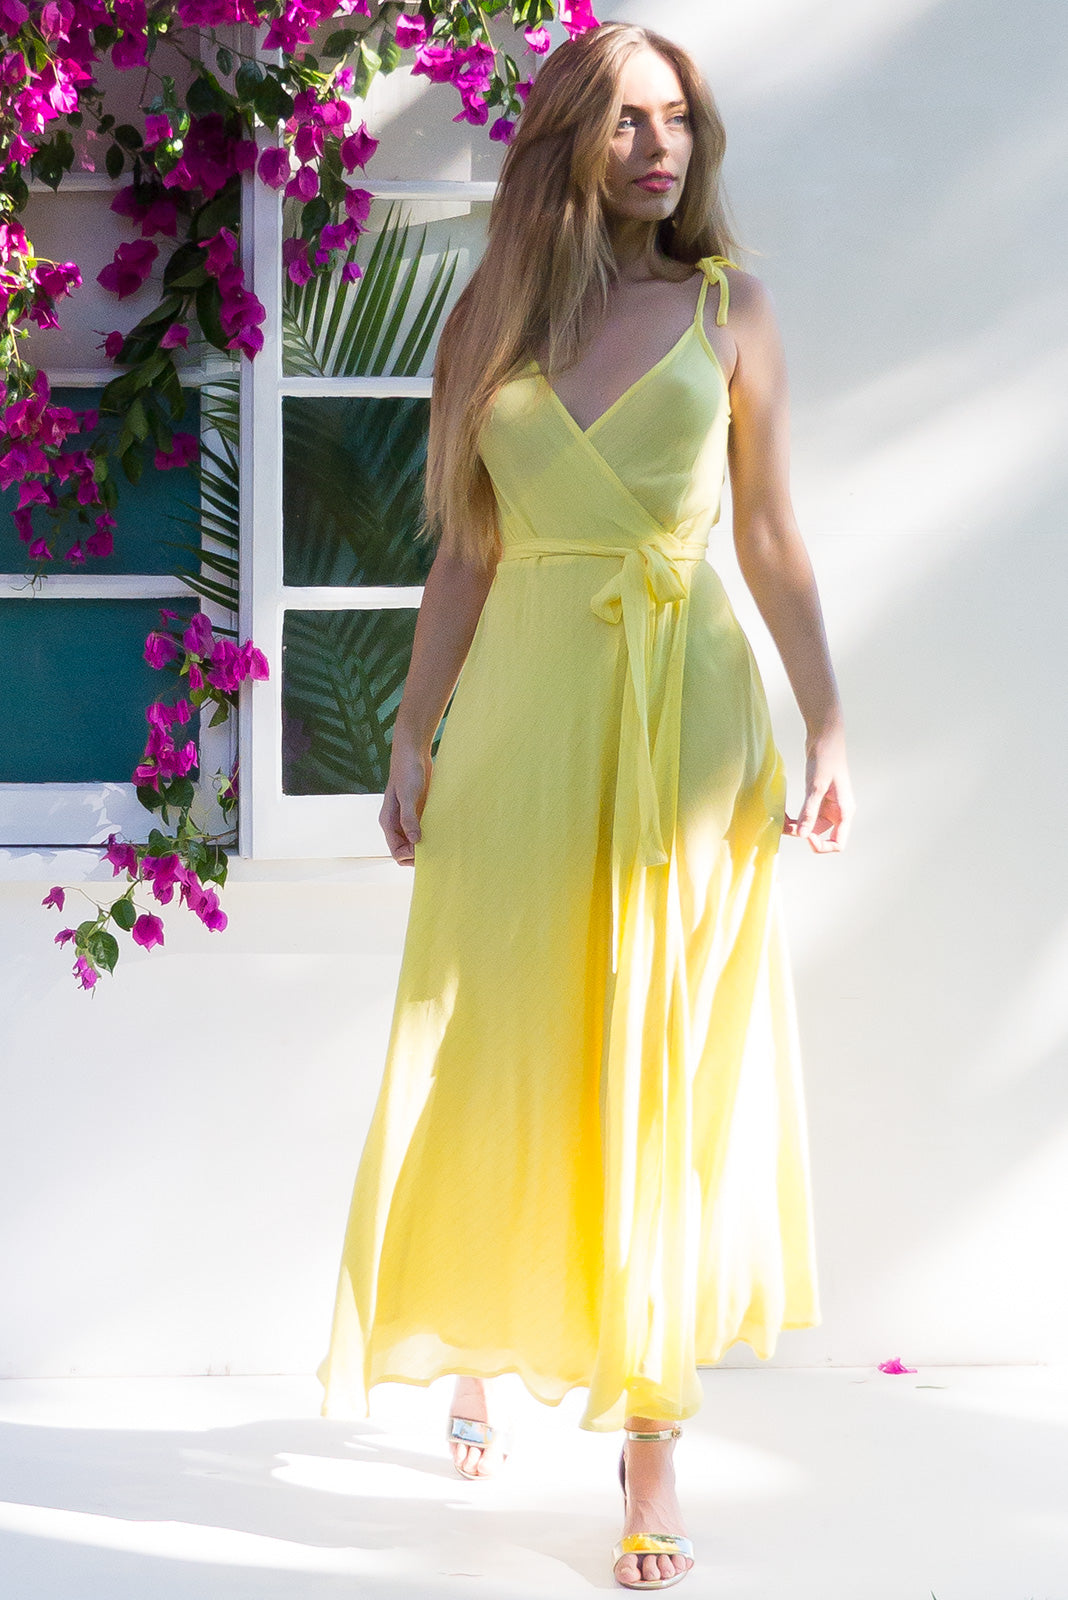 Byron Golden Thread Daisy Yellow Maxi with adjustable straps in bright yellow with a gold lurex thread